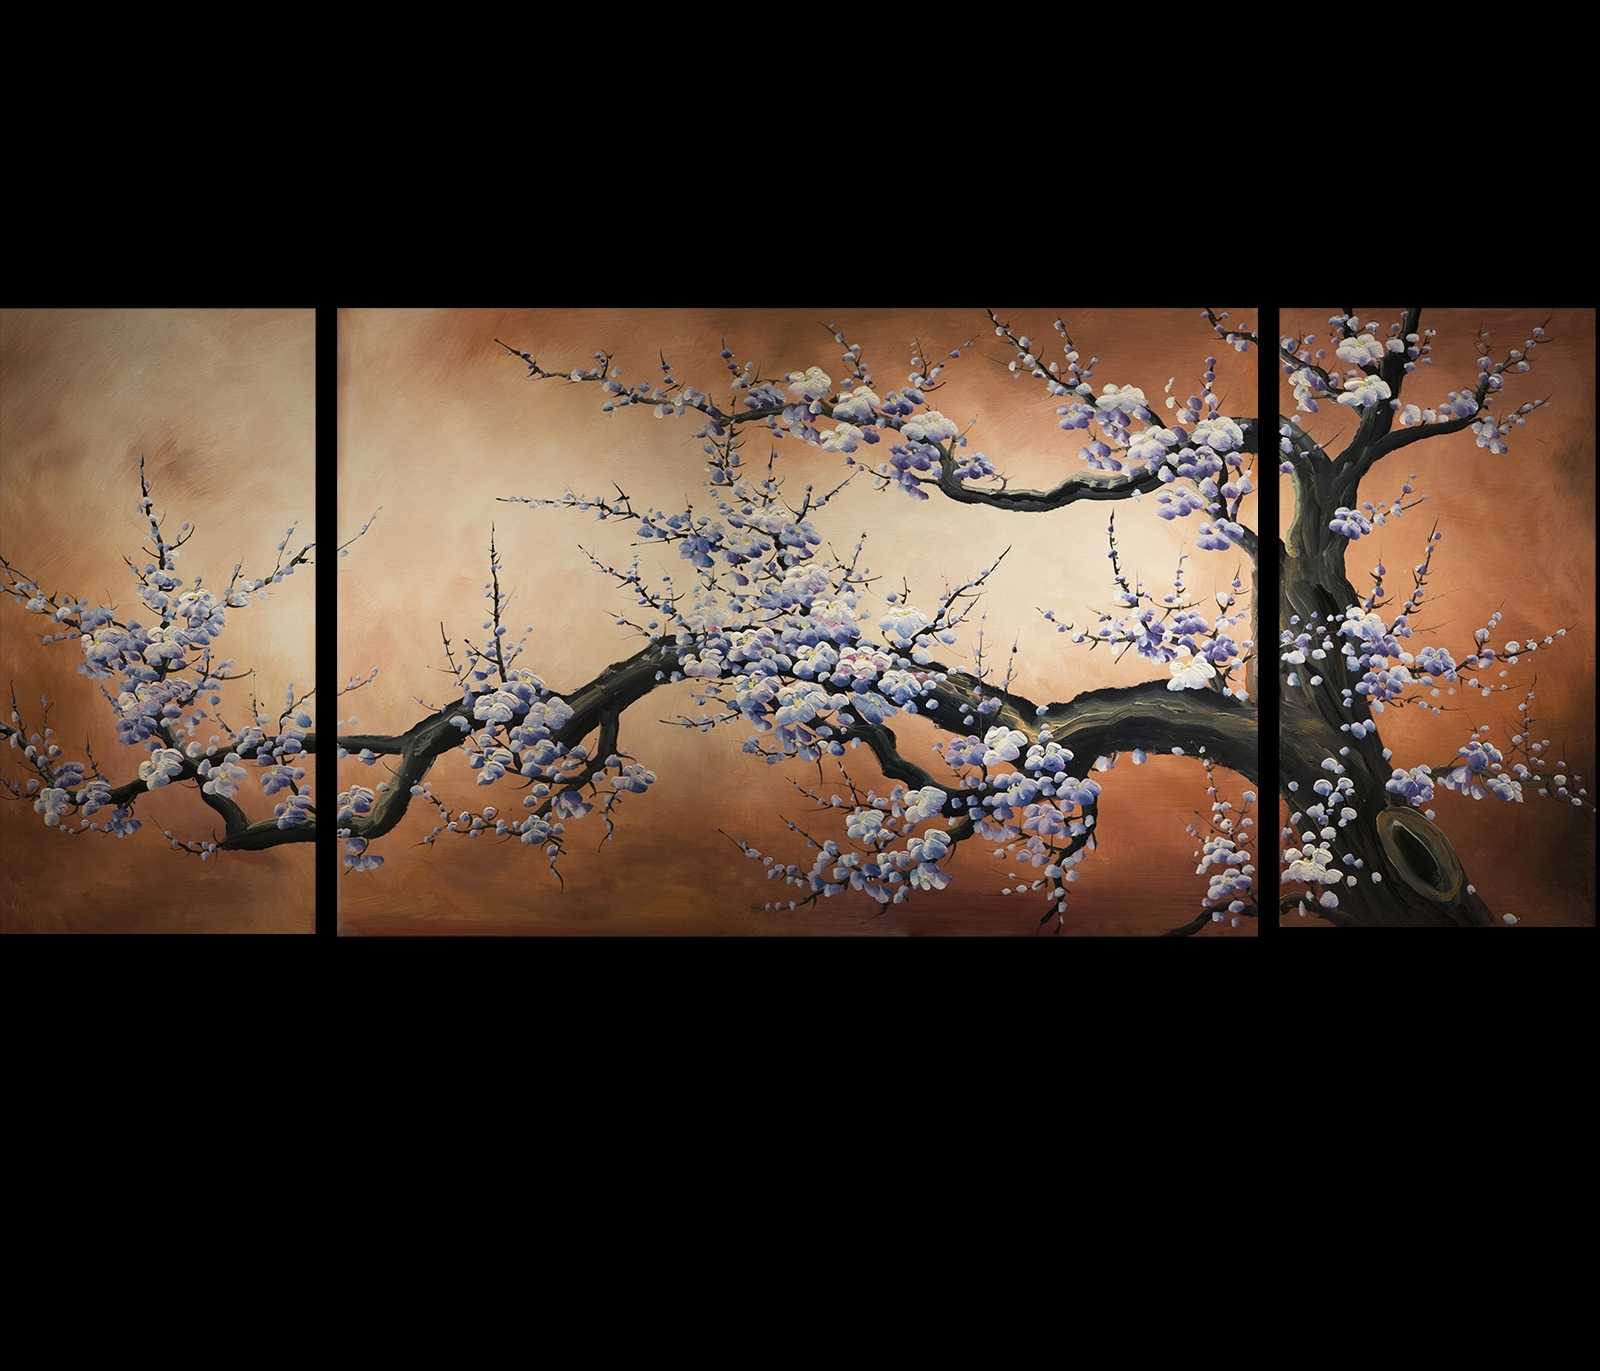 Abstract Art Prints On Canvas Modern Art Cherry Blossom Painting Within Recent Abstract Cherry Blossom Wall Art (View 3 of 20)